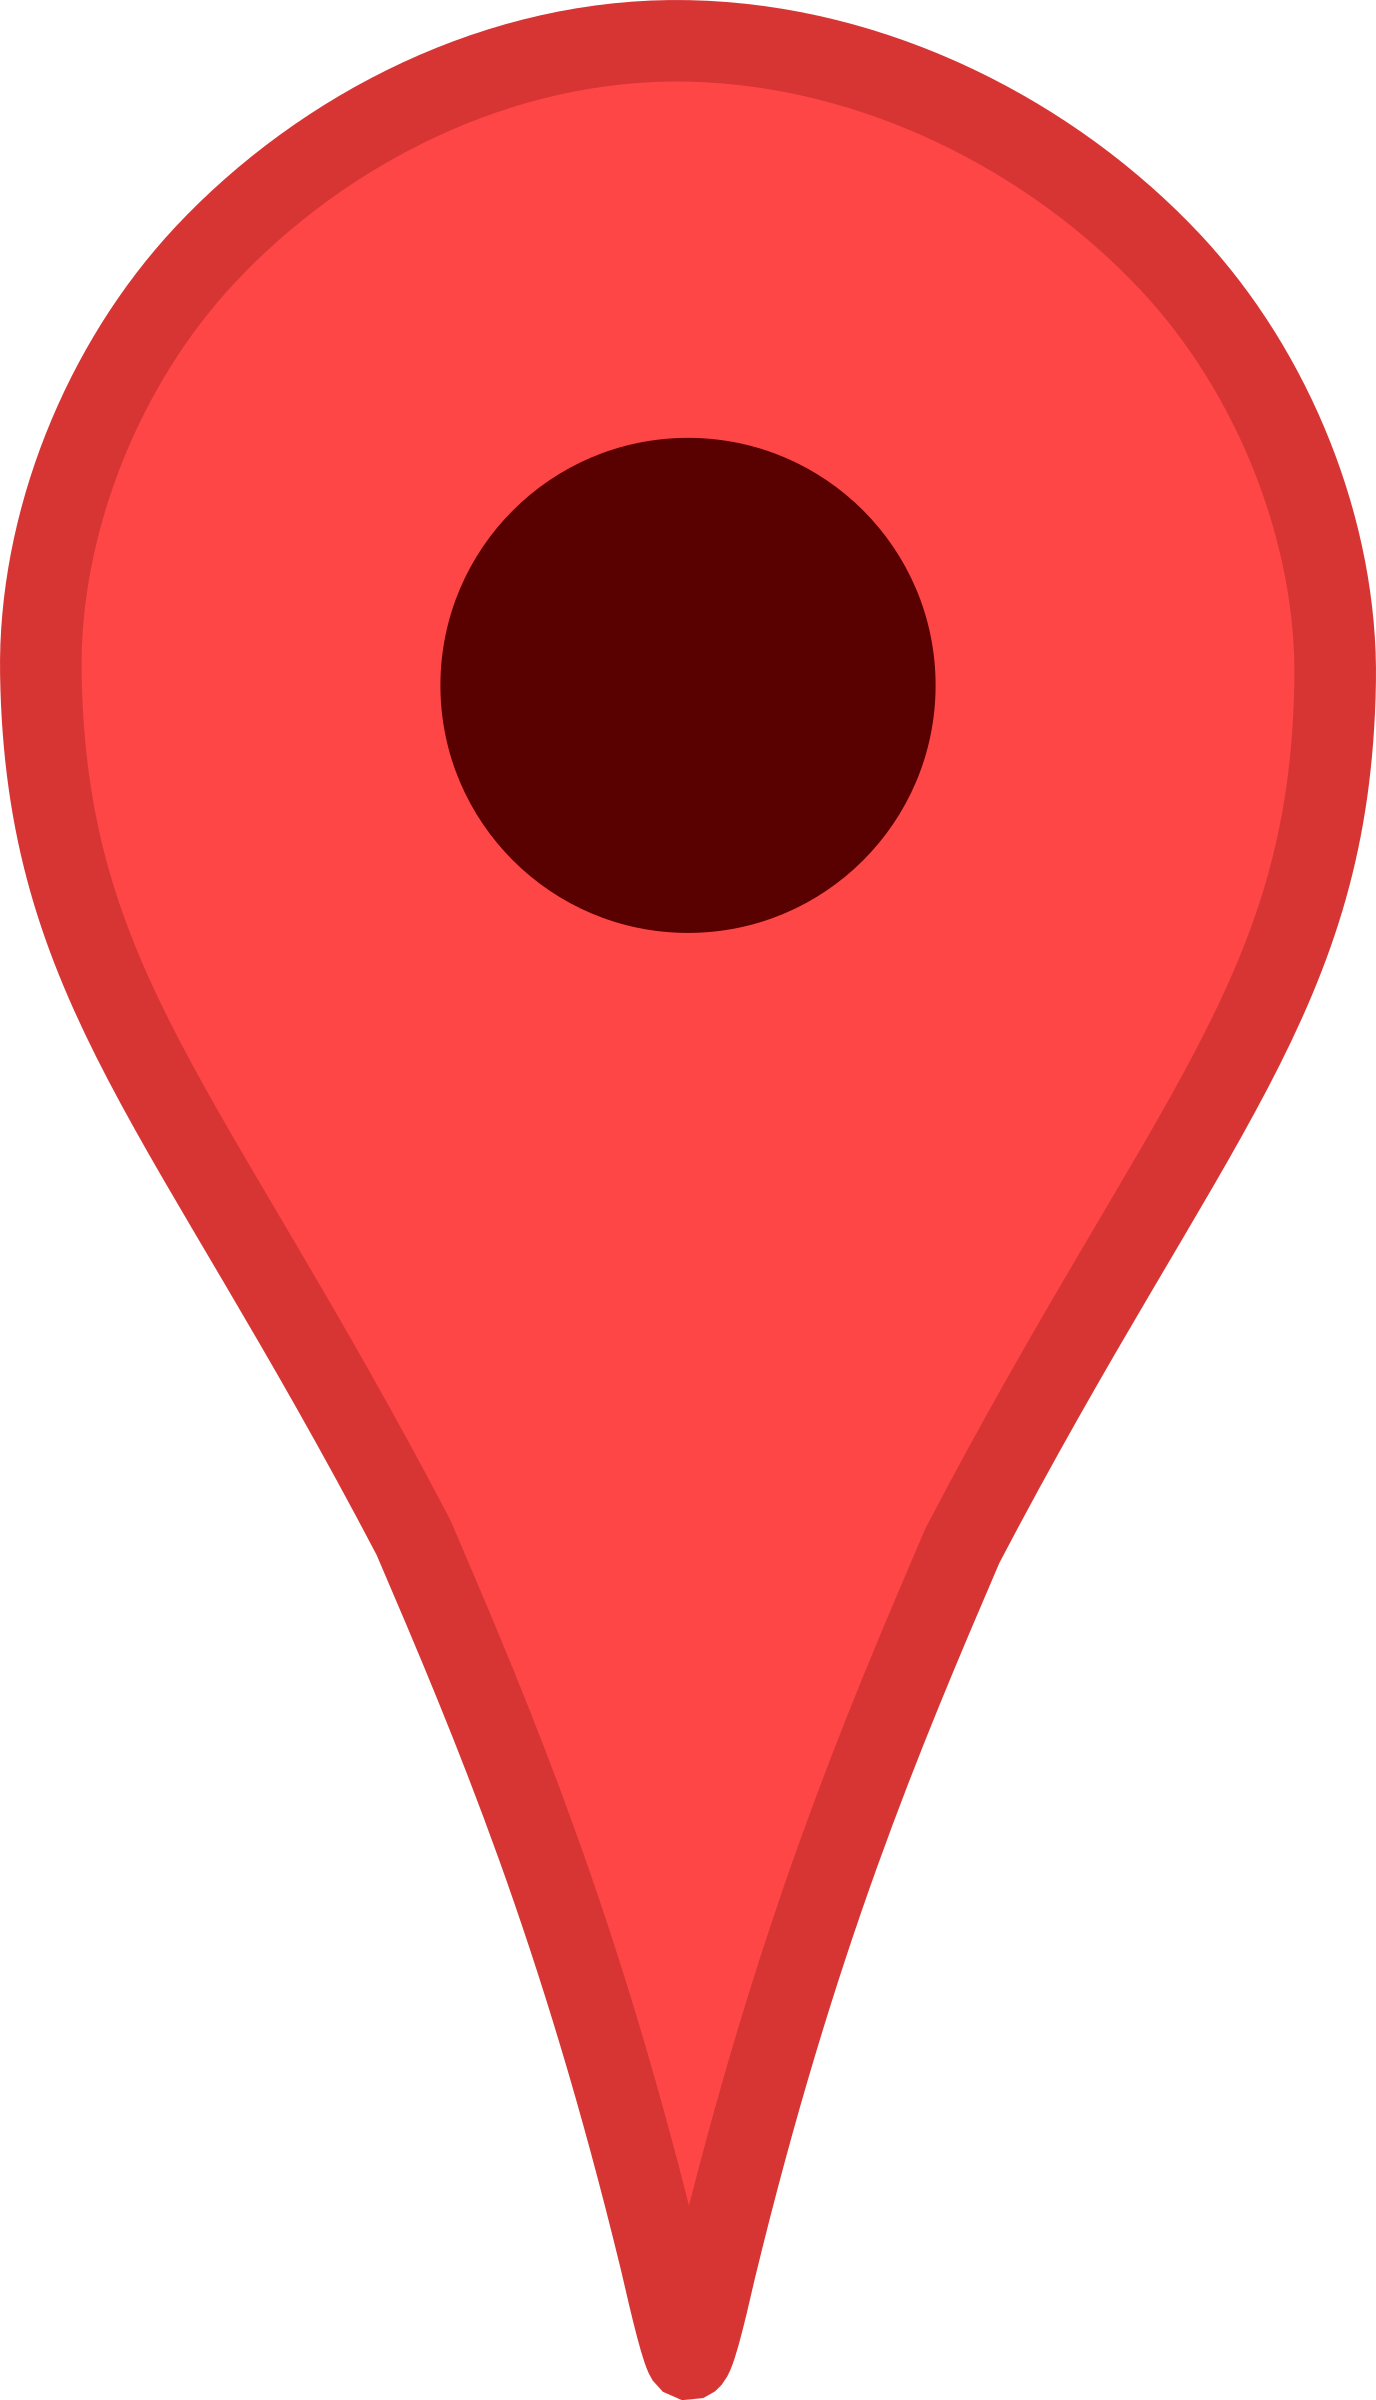 Maps Google Maker Pin Map Download Free Image PNG Image